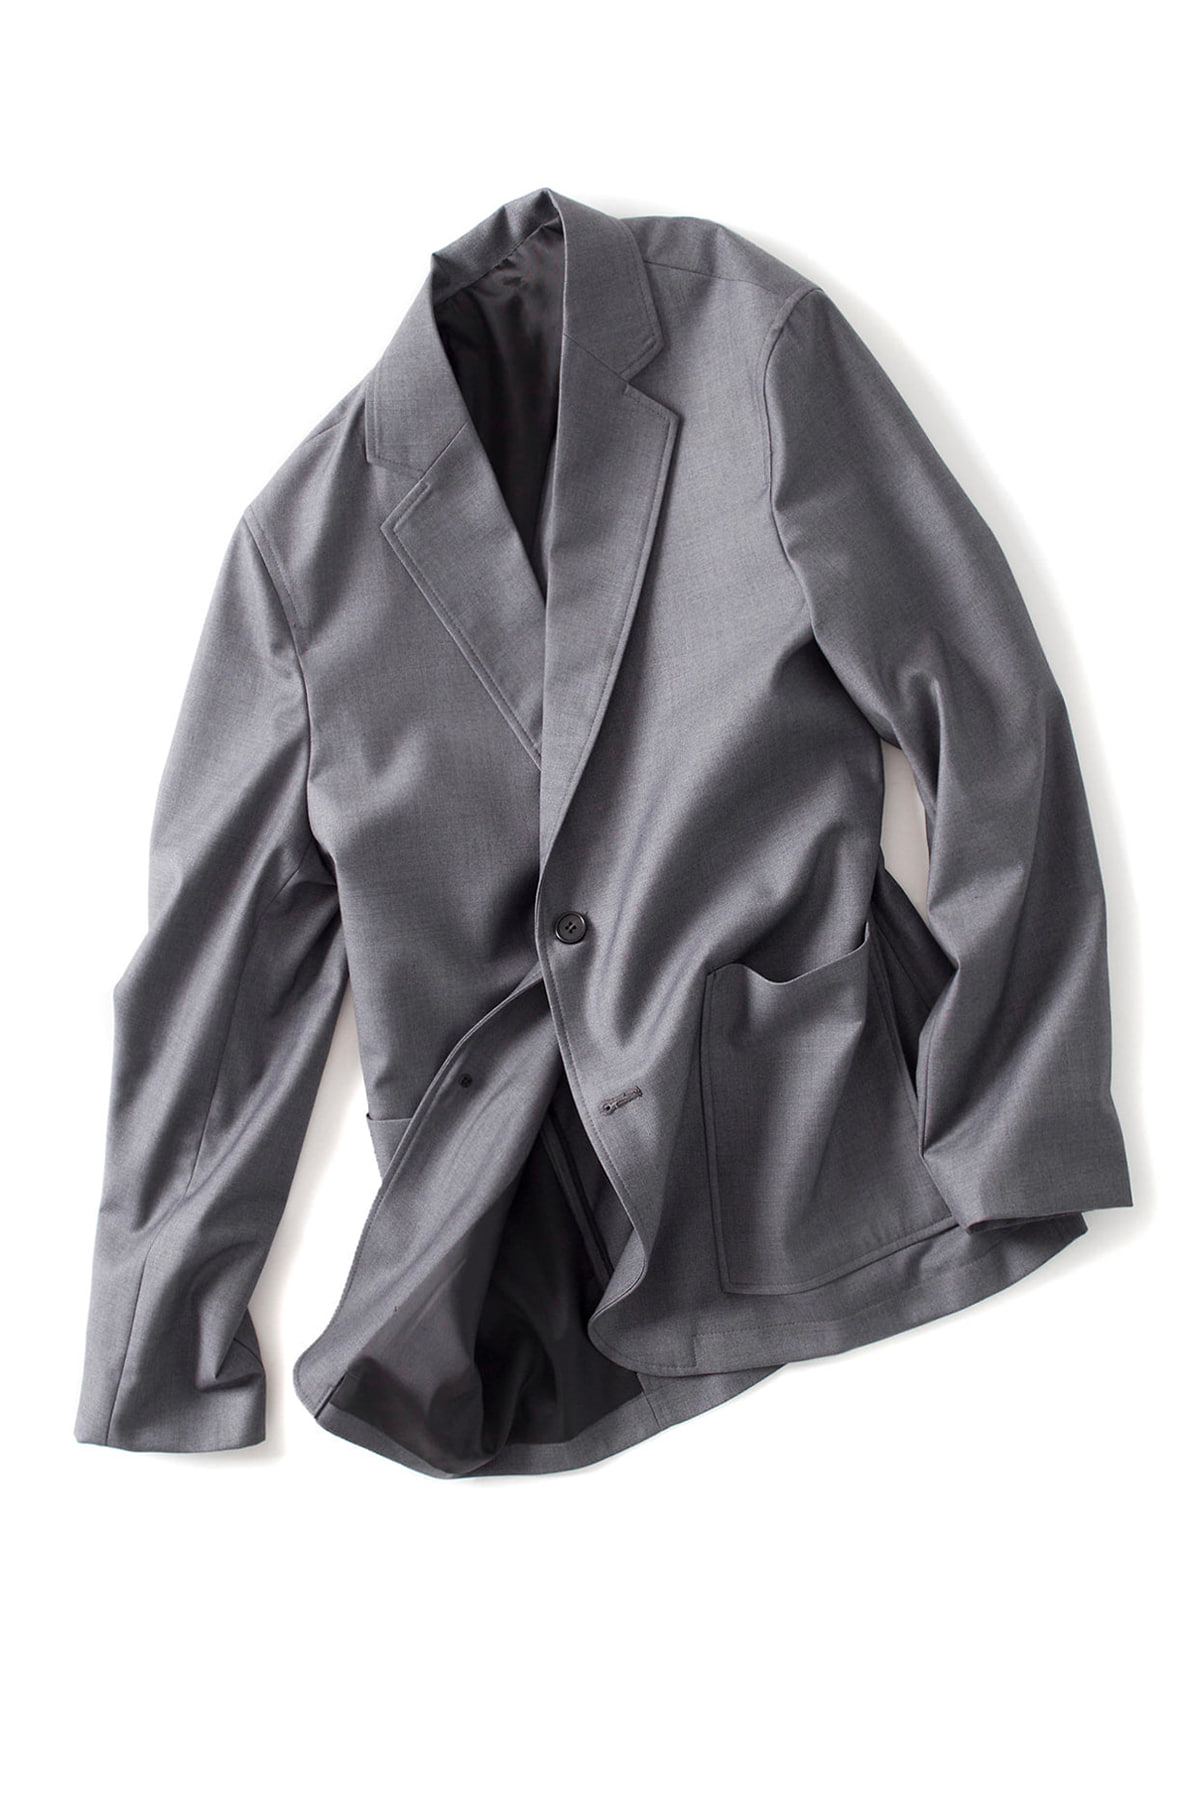 BIRTHDAYSUIT : Daily Suit Jacket (Light Grey)